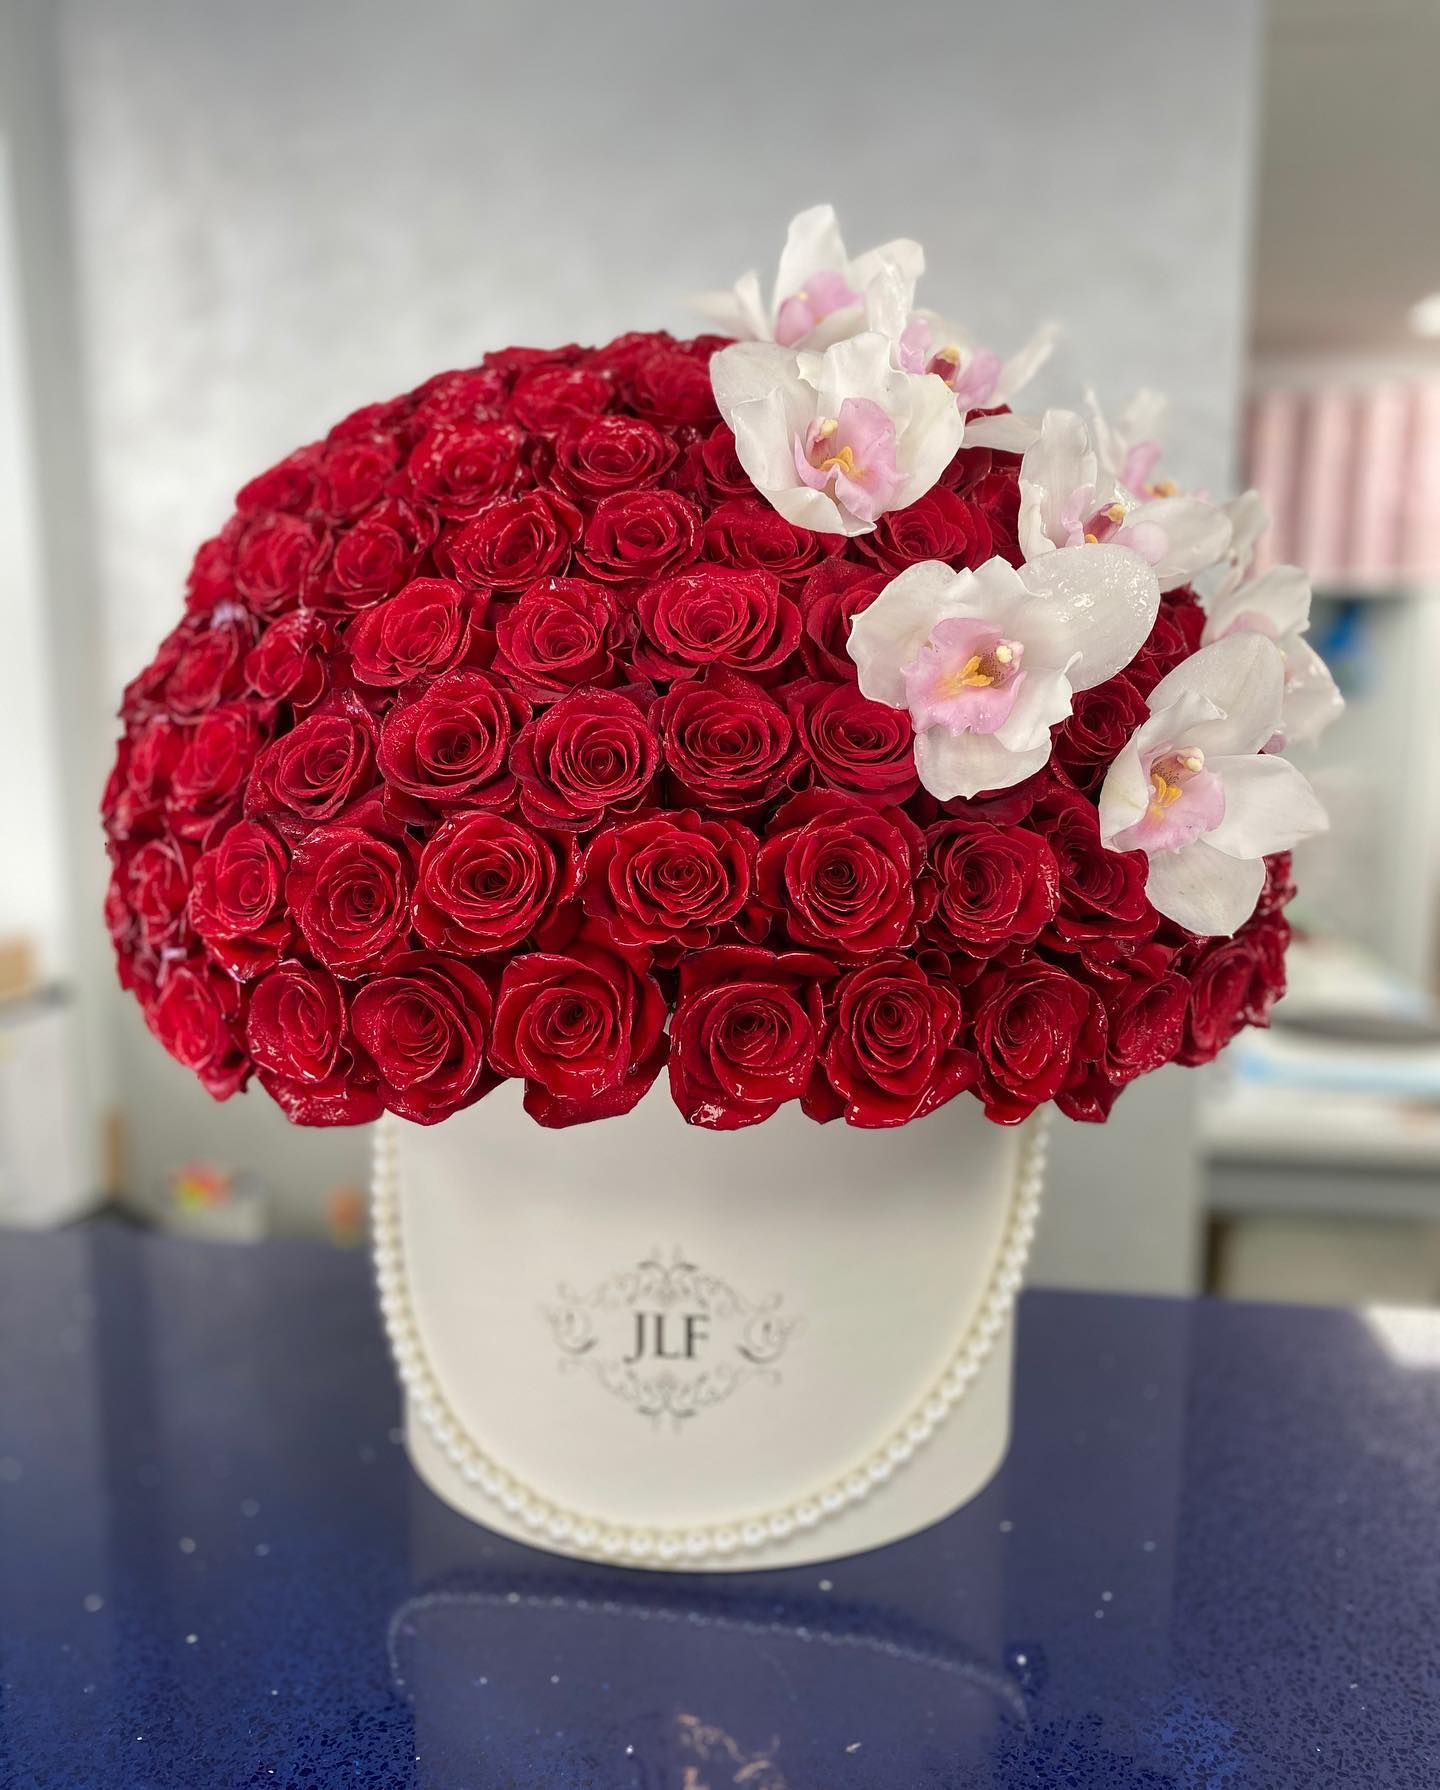 Signature 75 Red Rose Box With Orchids Jlf Jadorelesfleurs Flowers Laflowers Fleurs In 2020 Same Day Flower Delivery Flower Delivery Flowers